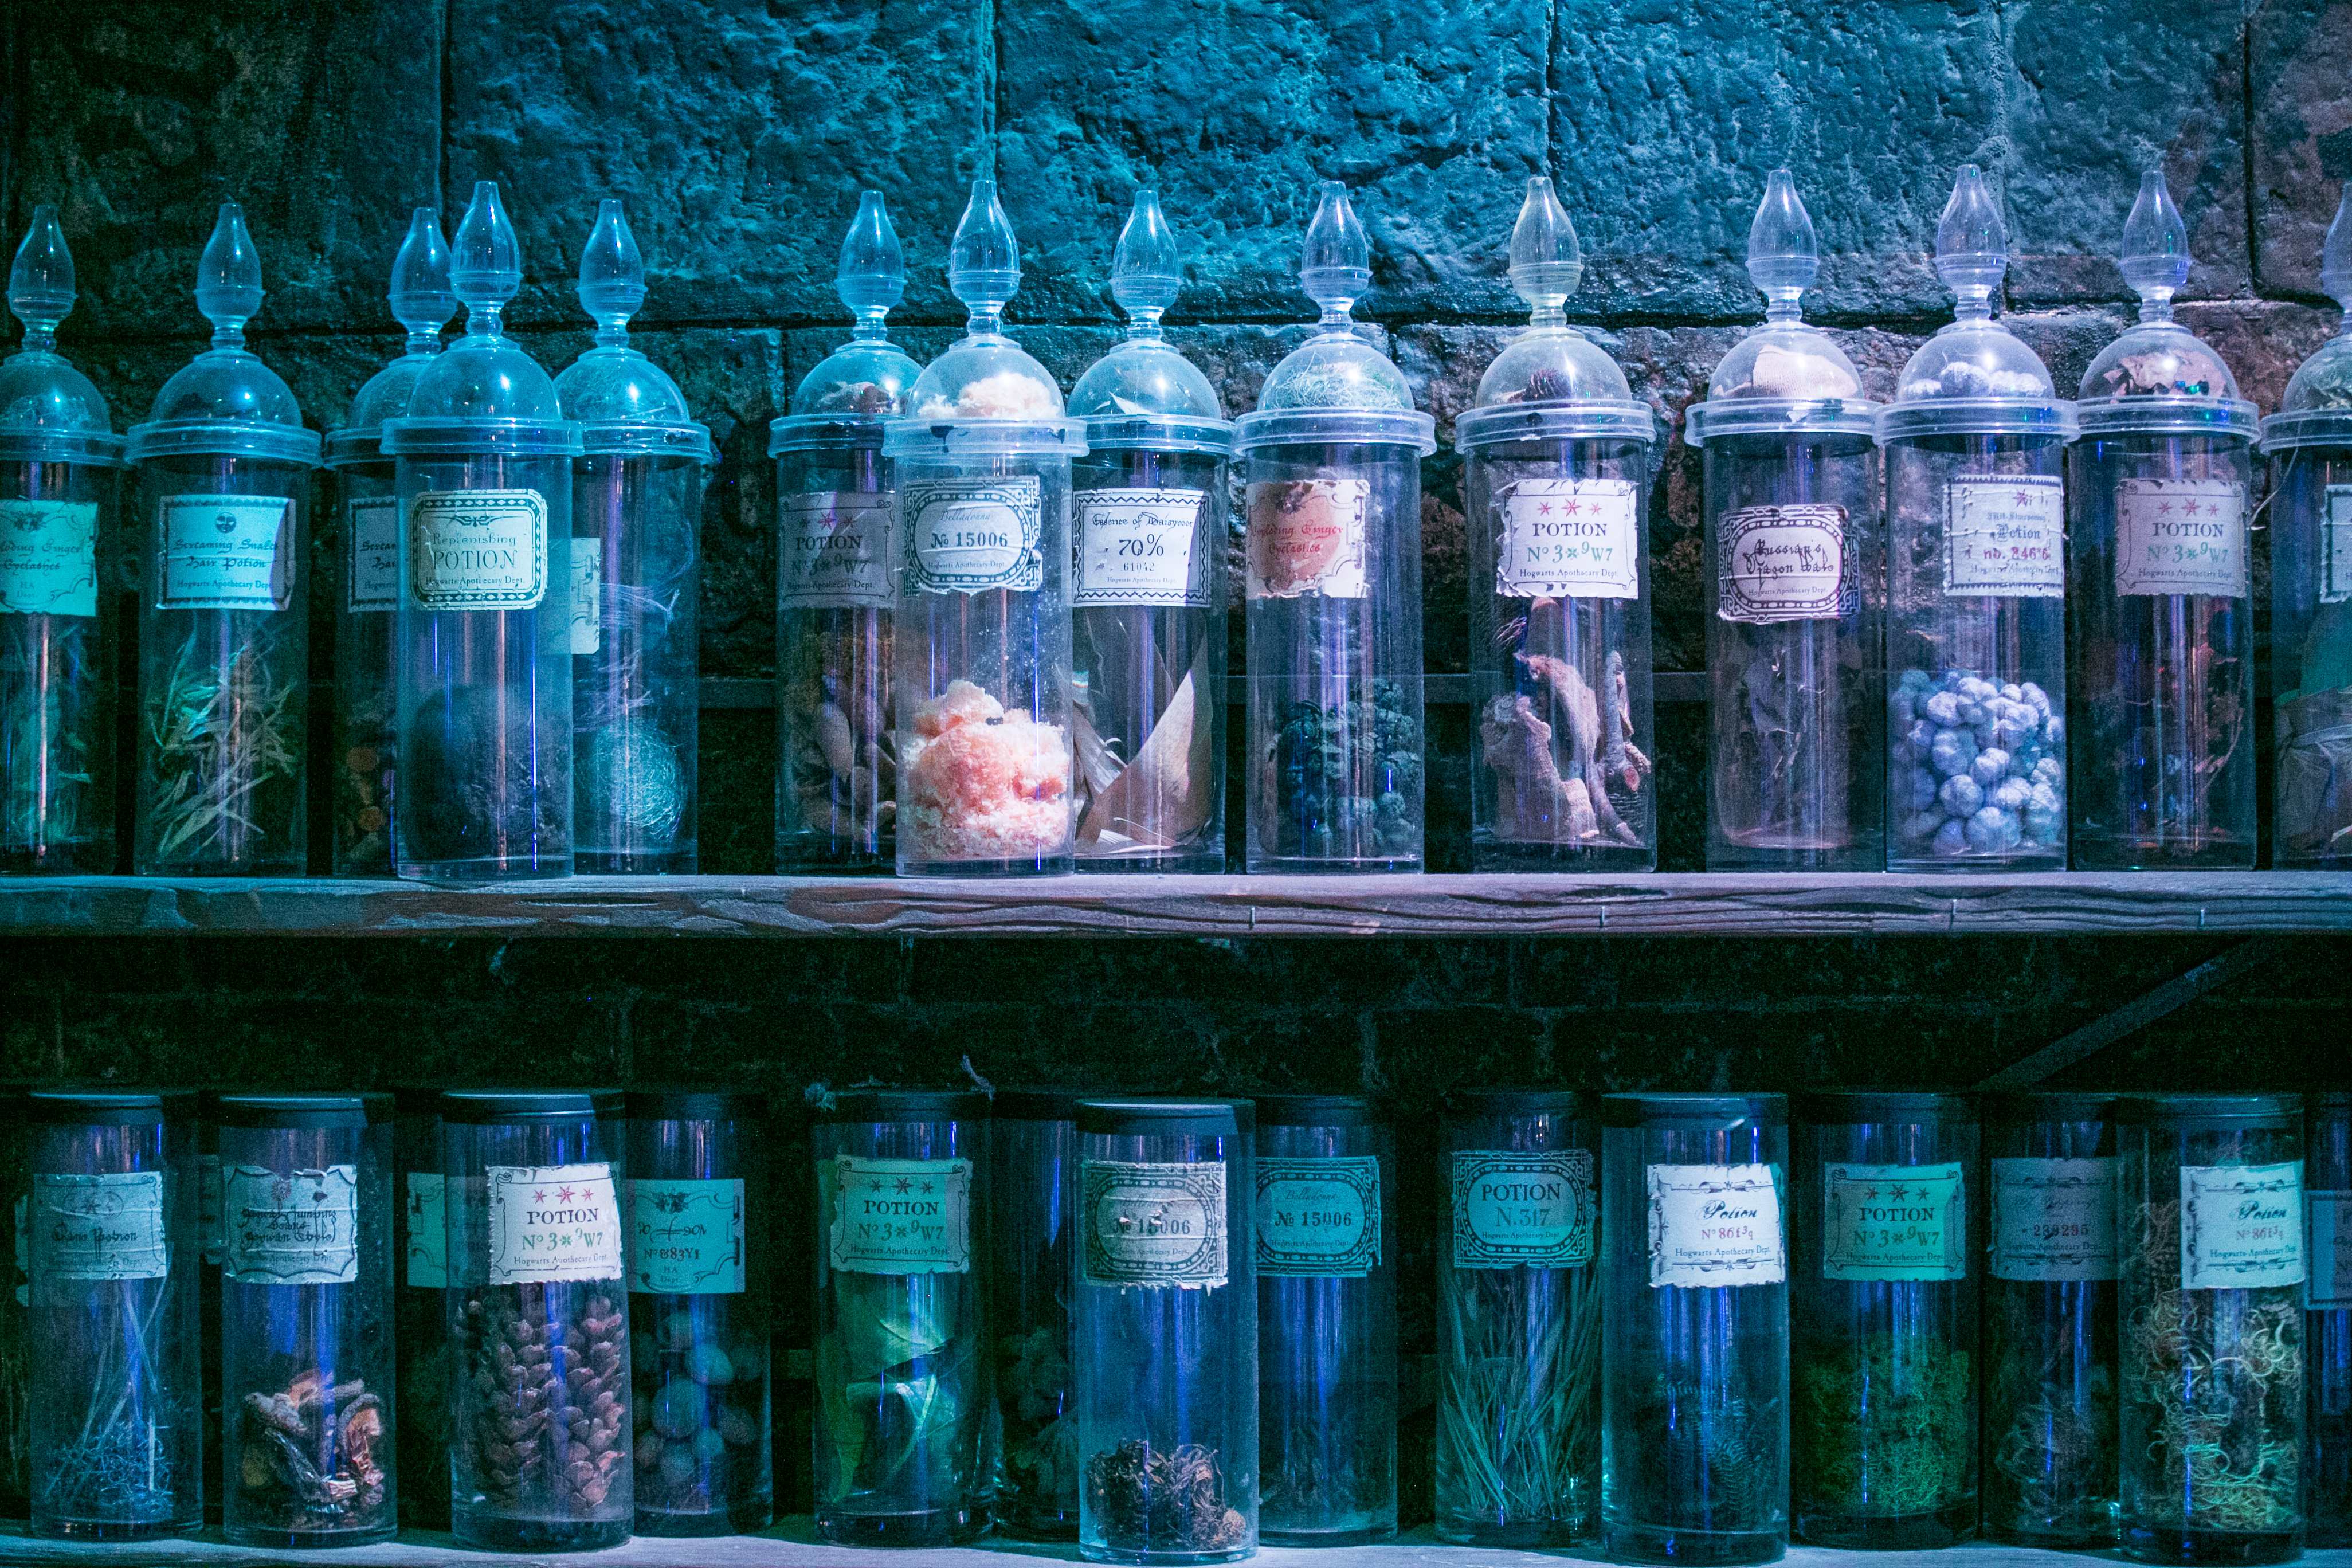 harry-potter-studio-tour-potions-bottles